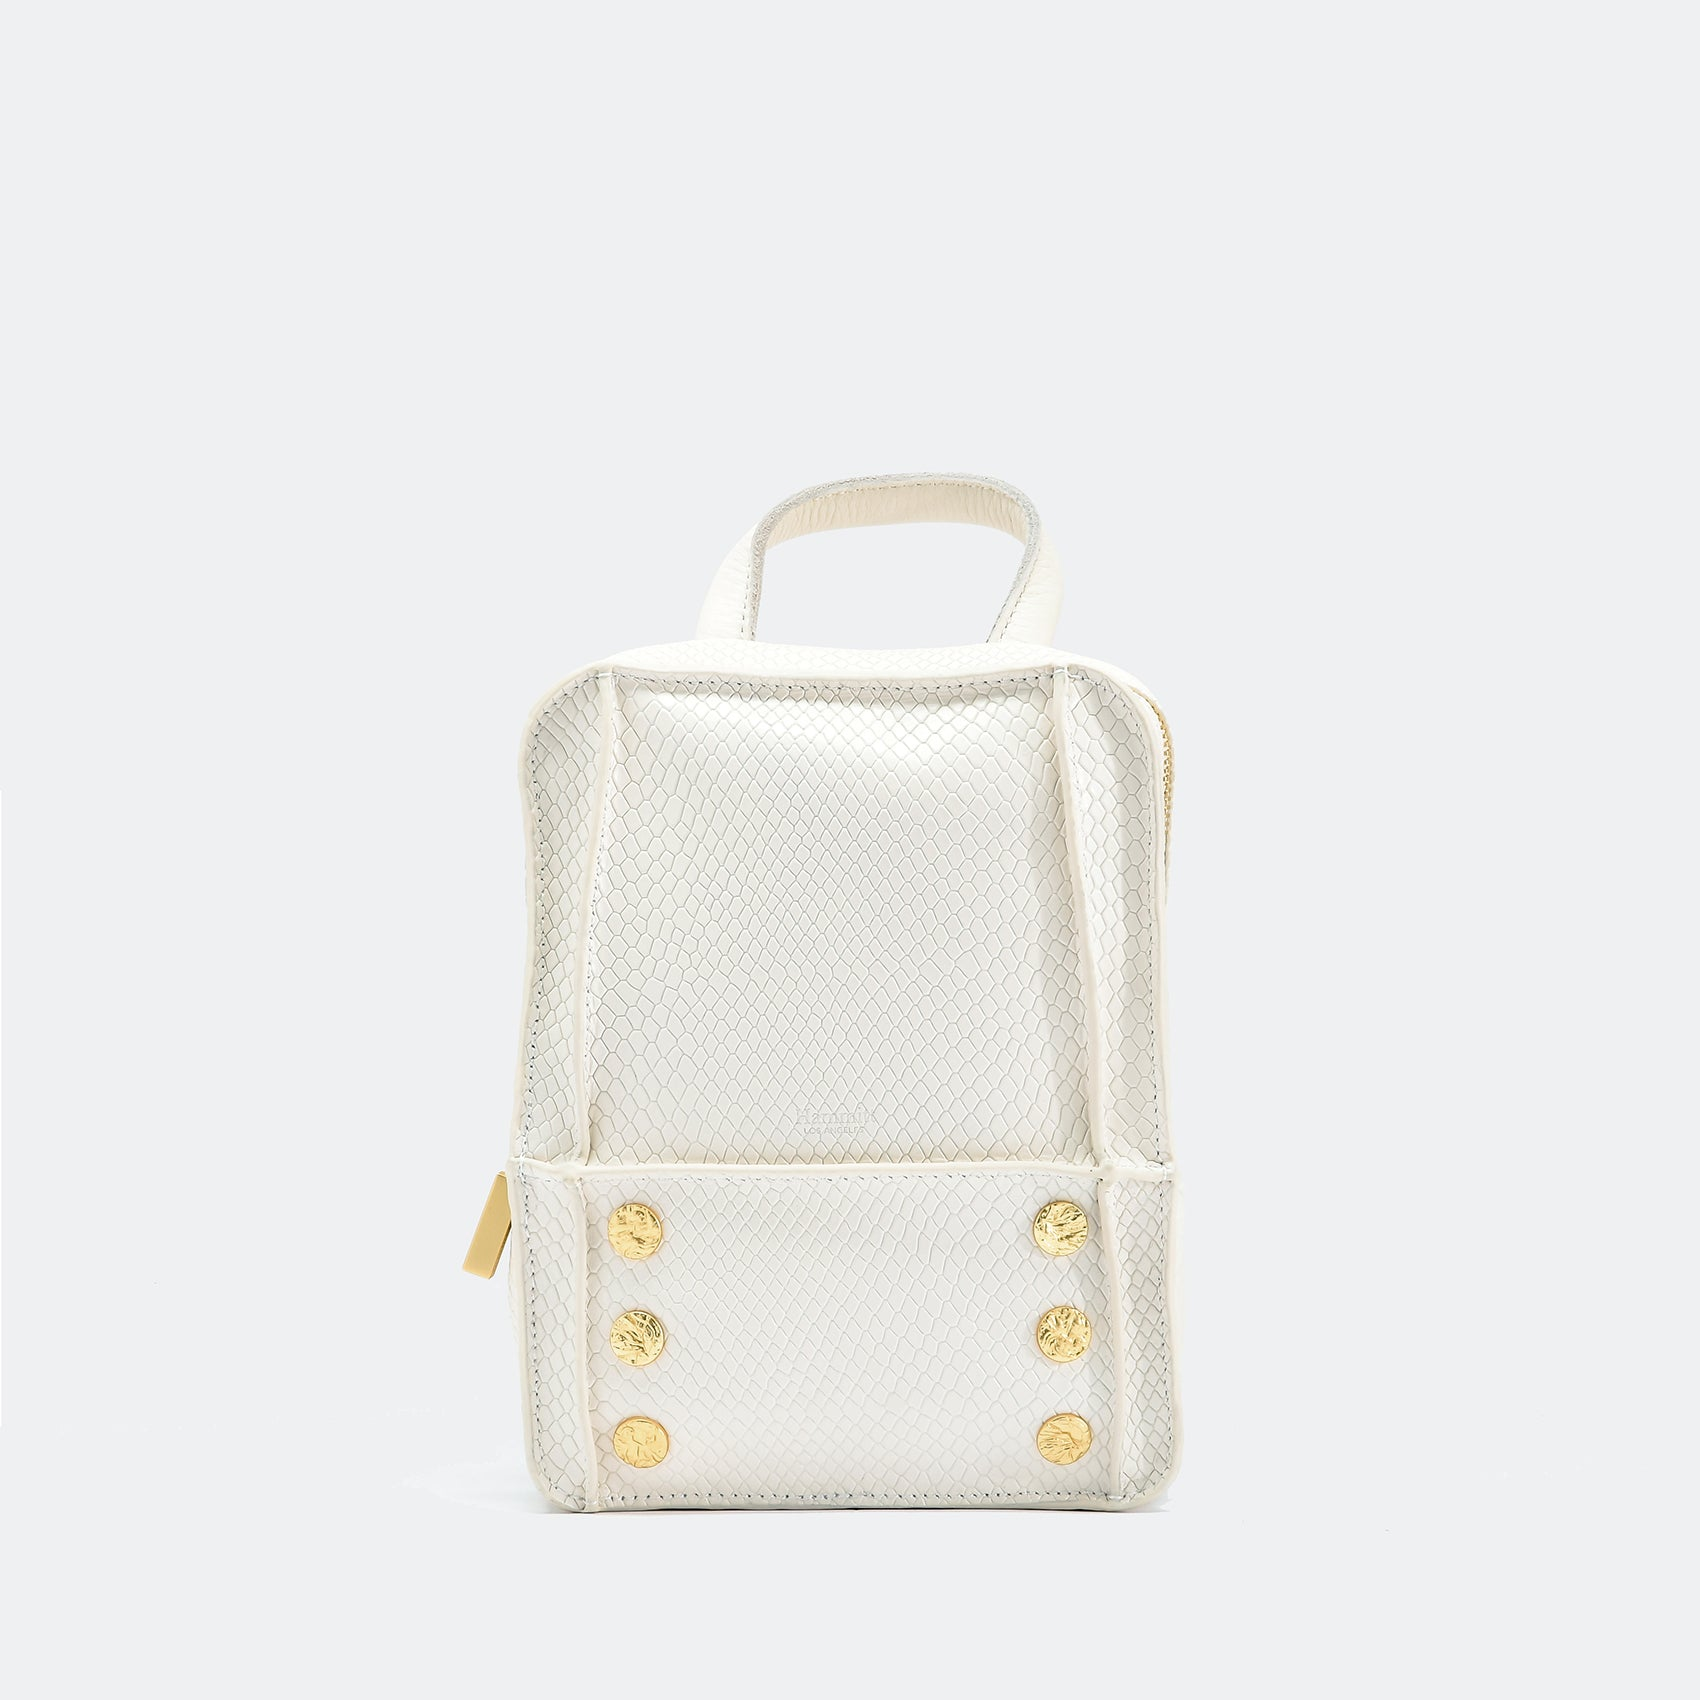 Hunter | Marshmallow White Snake/Brushed Gold | Mini